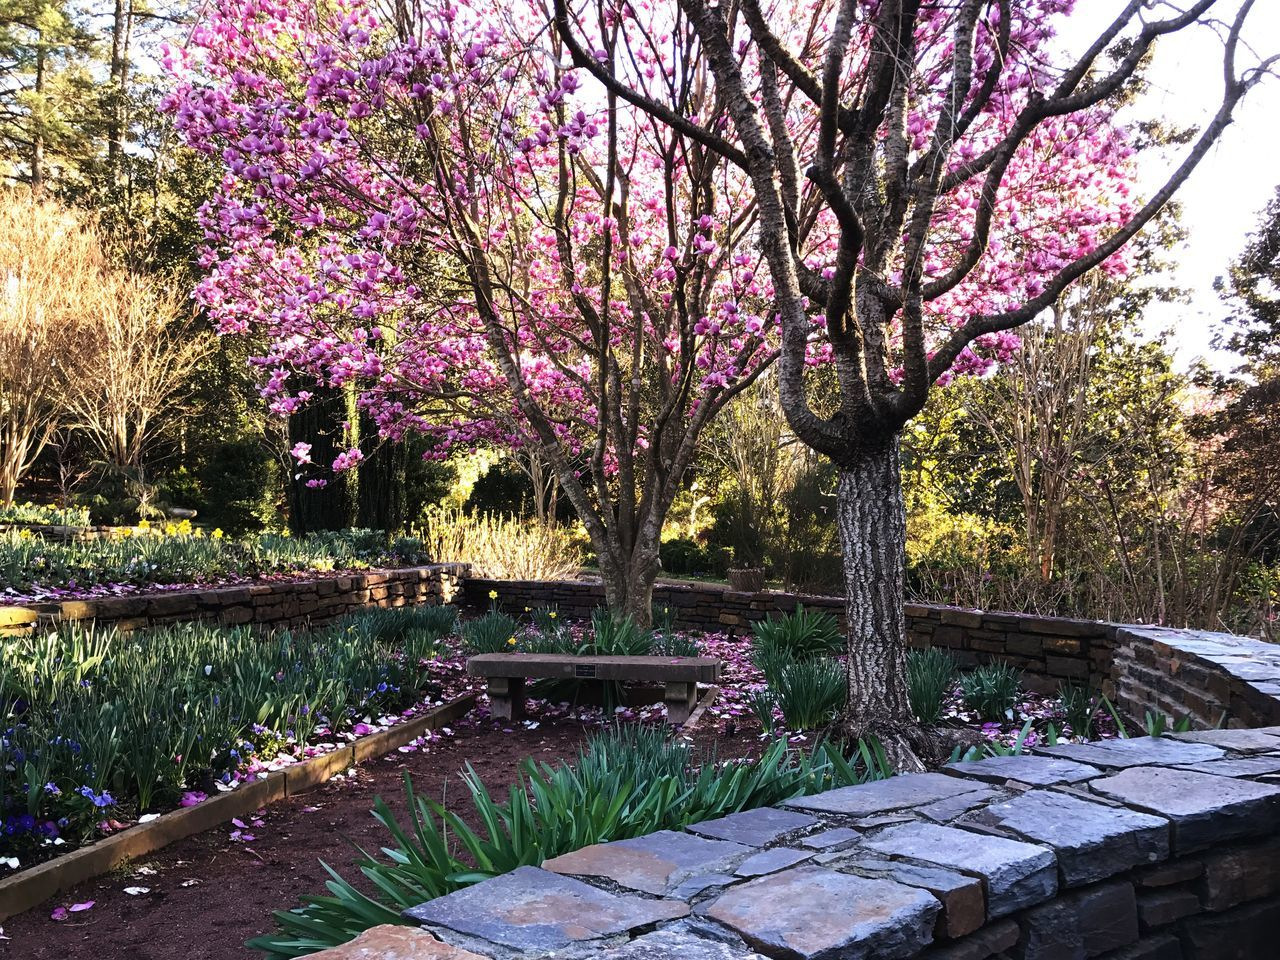 I love spring in North Carolina. Flower Growth Nature Beauty In Nature Tree Plant Freshness Pink Color Purple Outdoors No People Blossom Fragility Day Rhododendron Spring Springtime Spring Flowers